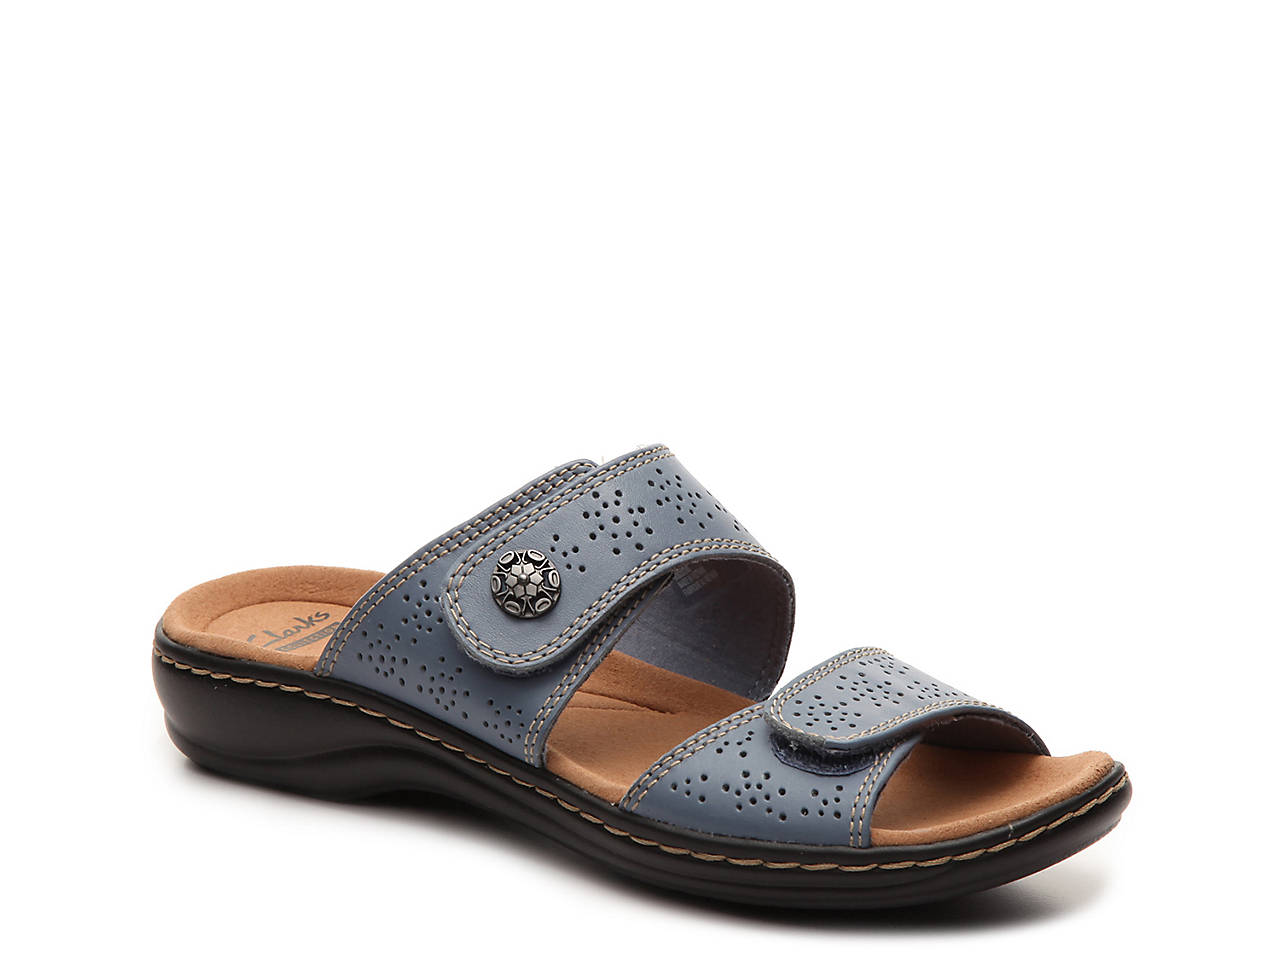 65593abfcfce Clarks Leisa Lacole Slide Sandal Women s Shoes